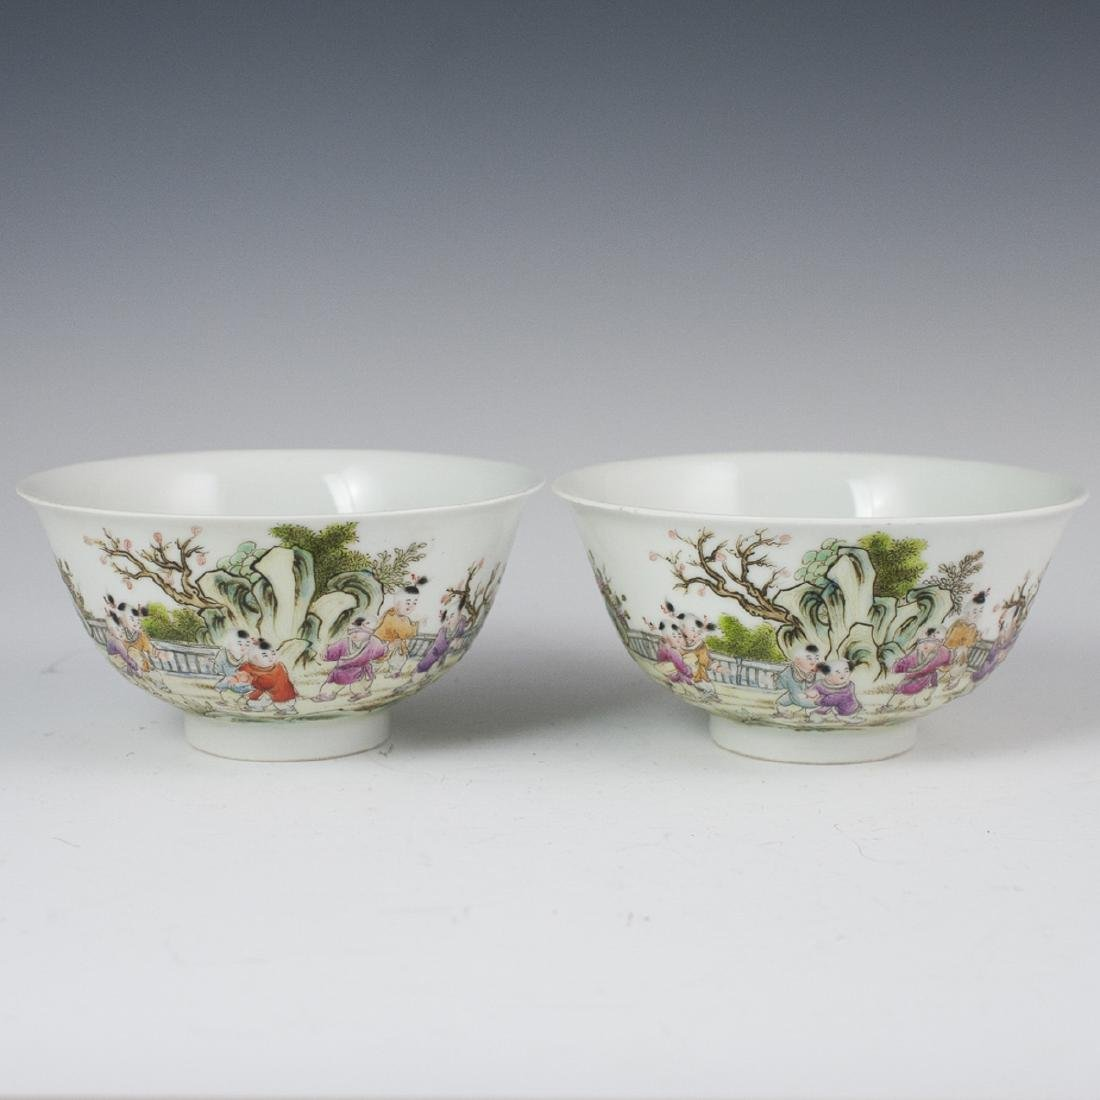 Chinese Enameled Porcelain Rice Bowls